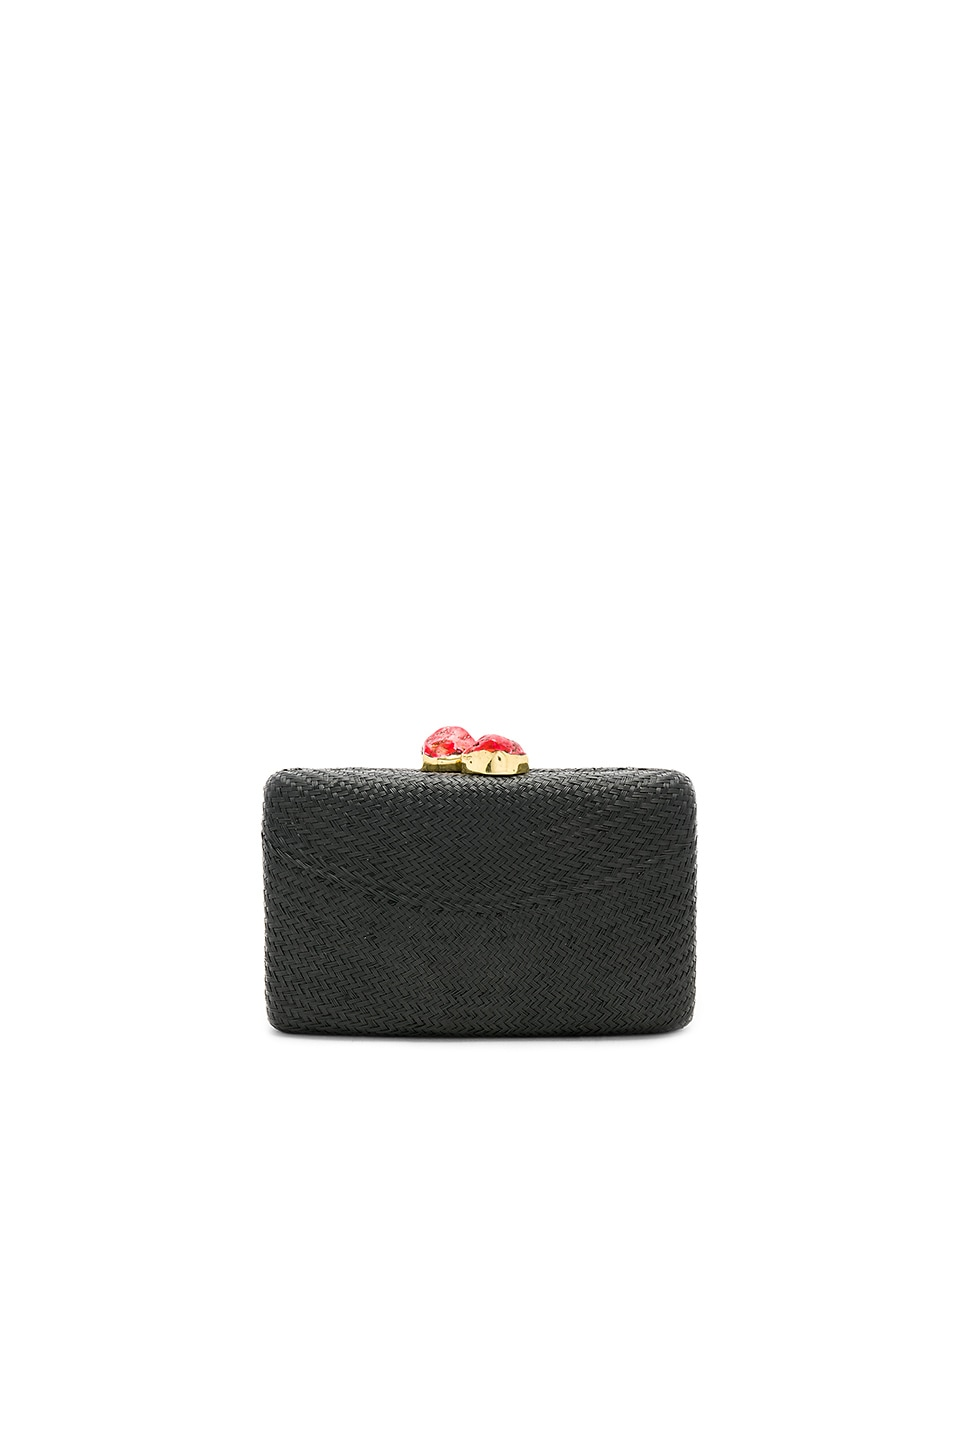 KAYU Jen Clutch in Black & Red